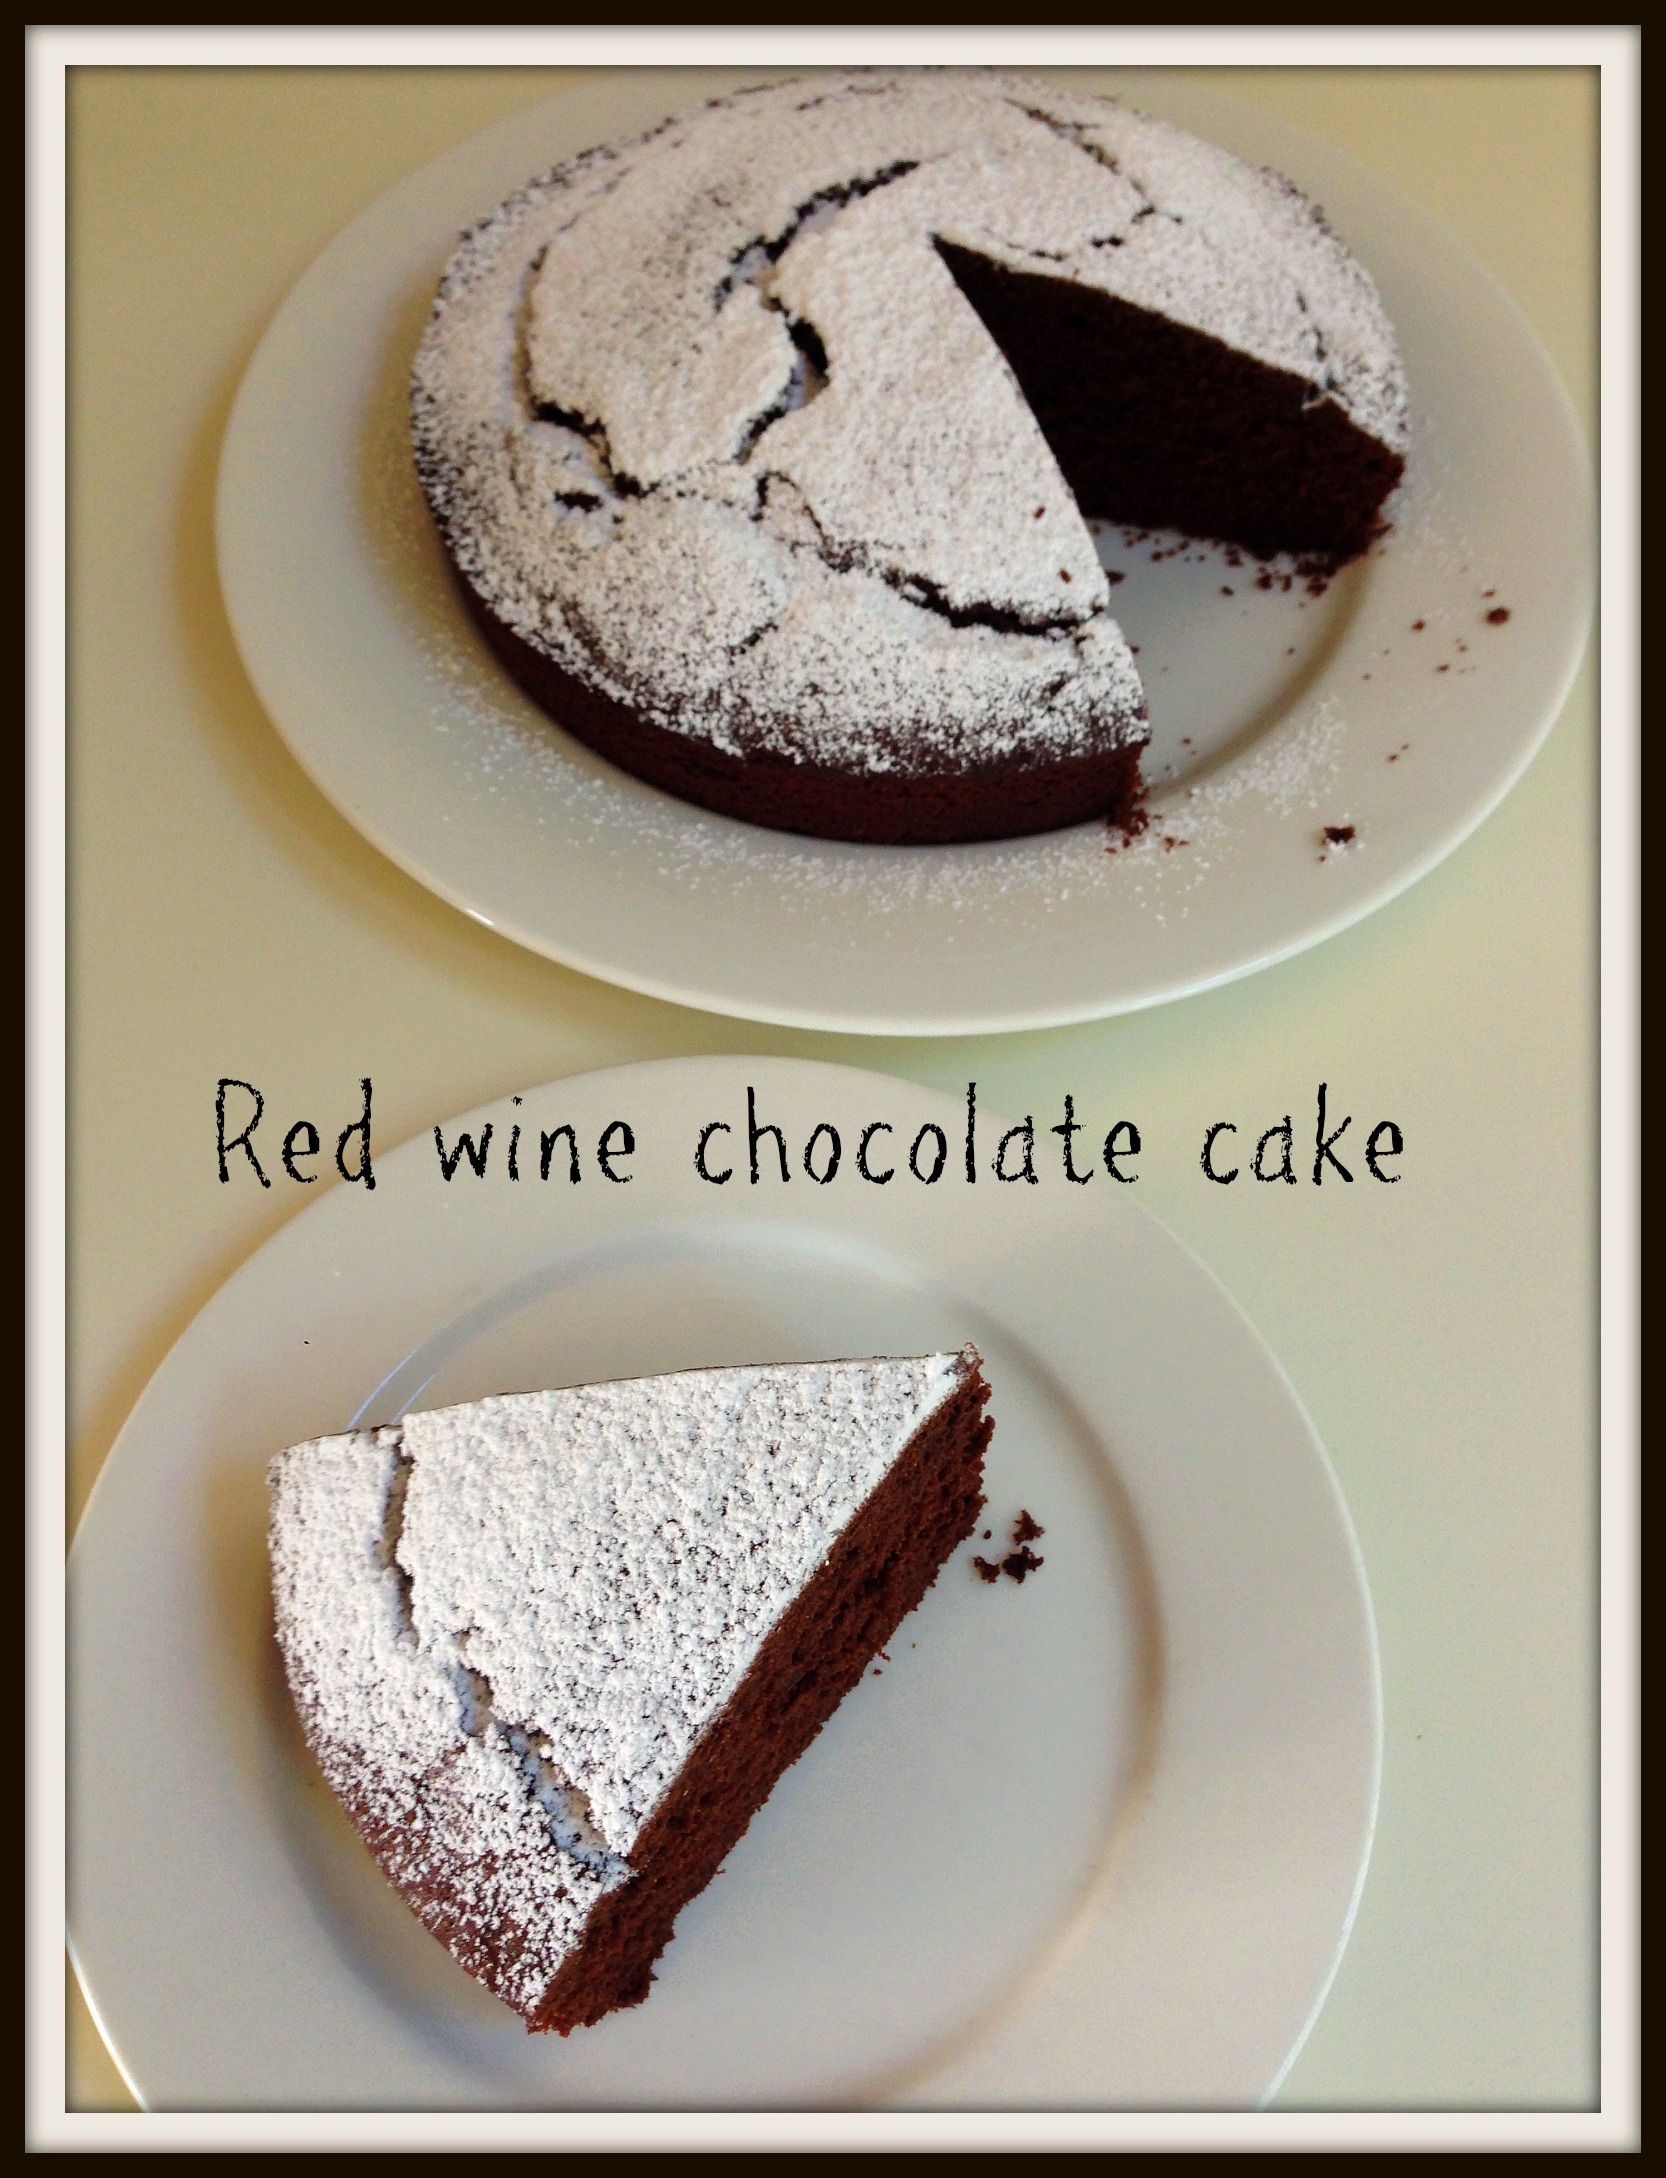 – red wine IN chocolate cake? Red wine while eating chocolate cake ...